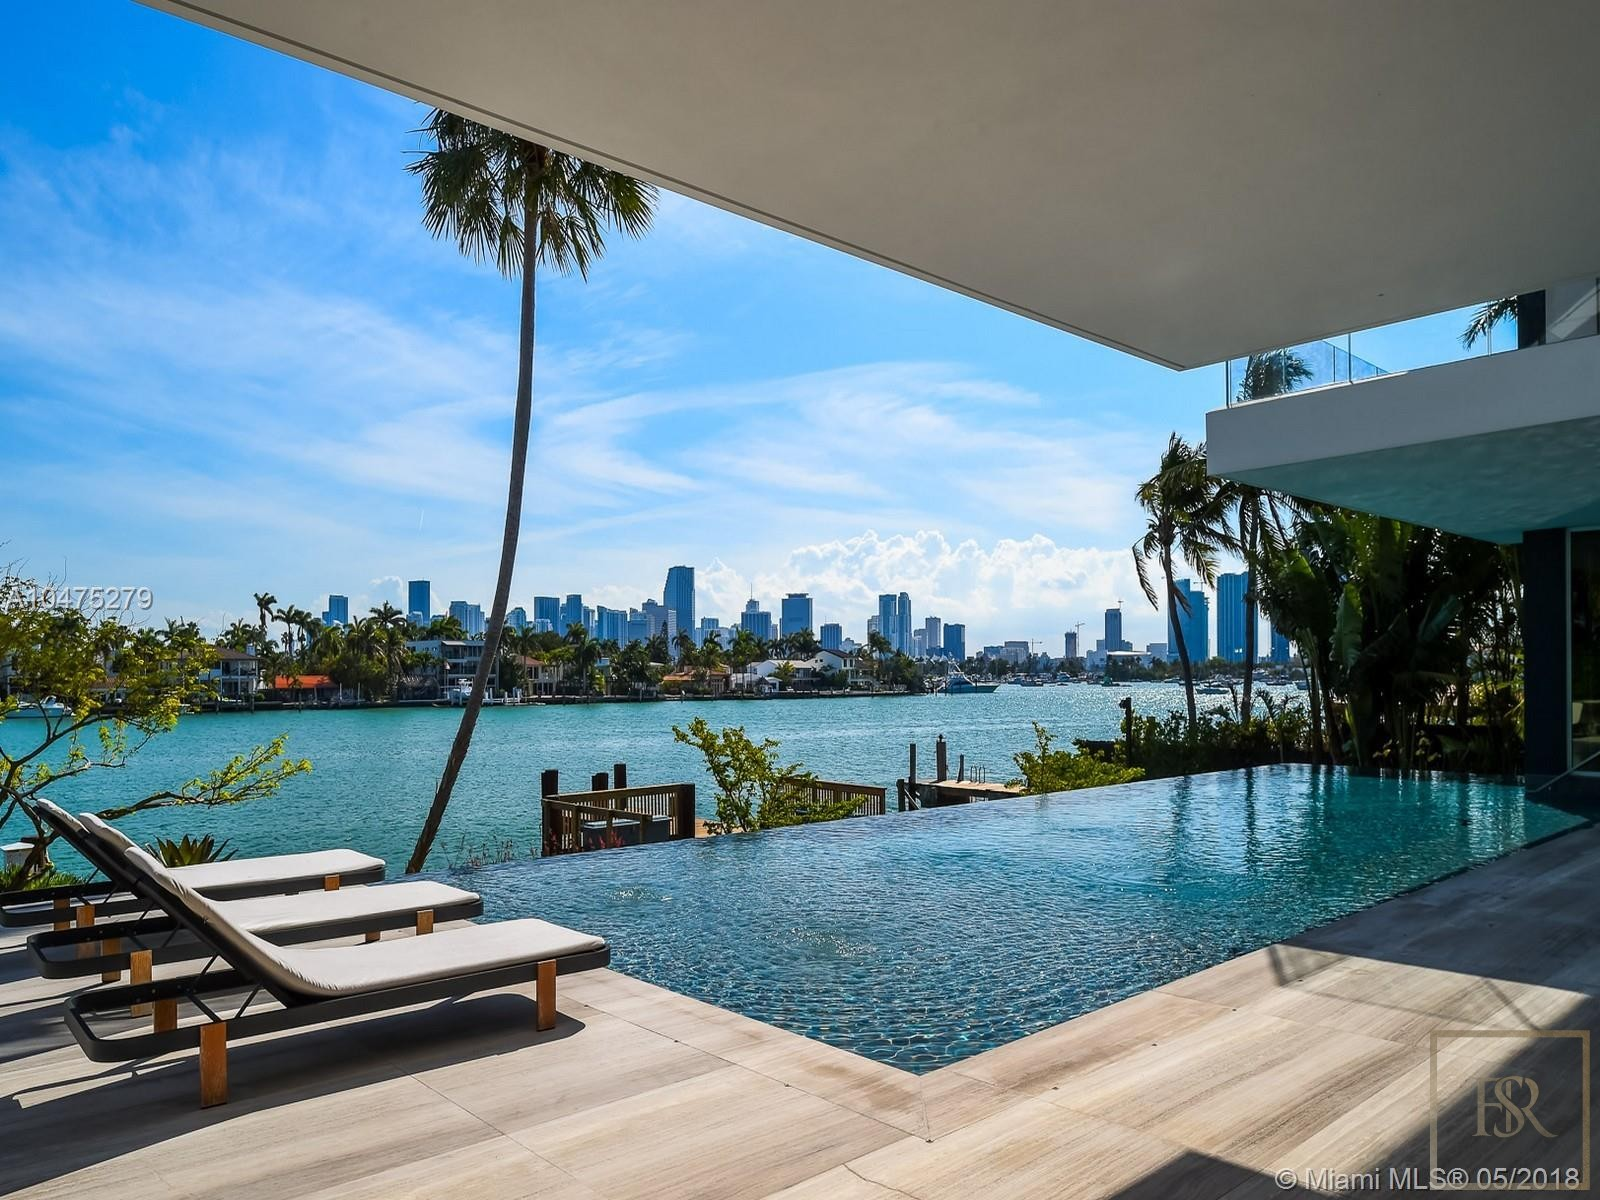 House HIBISCUS ISLAND 370 S Hibiscus Dr - Miami Beach, USA for sale For Super Rich